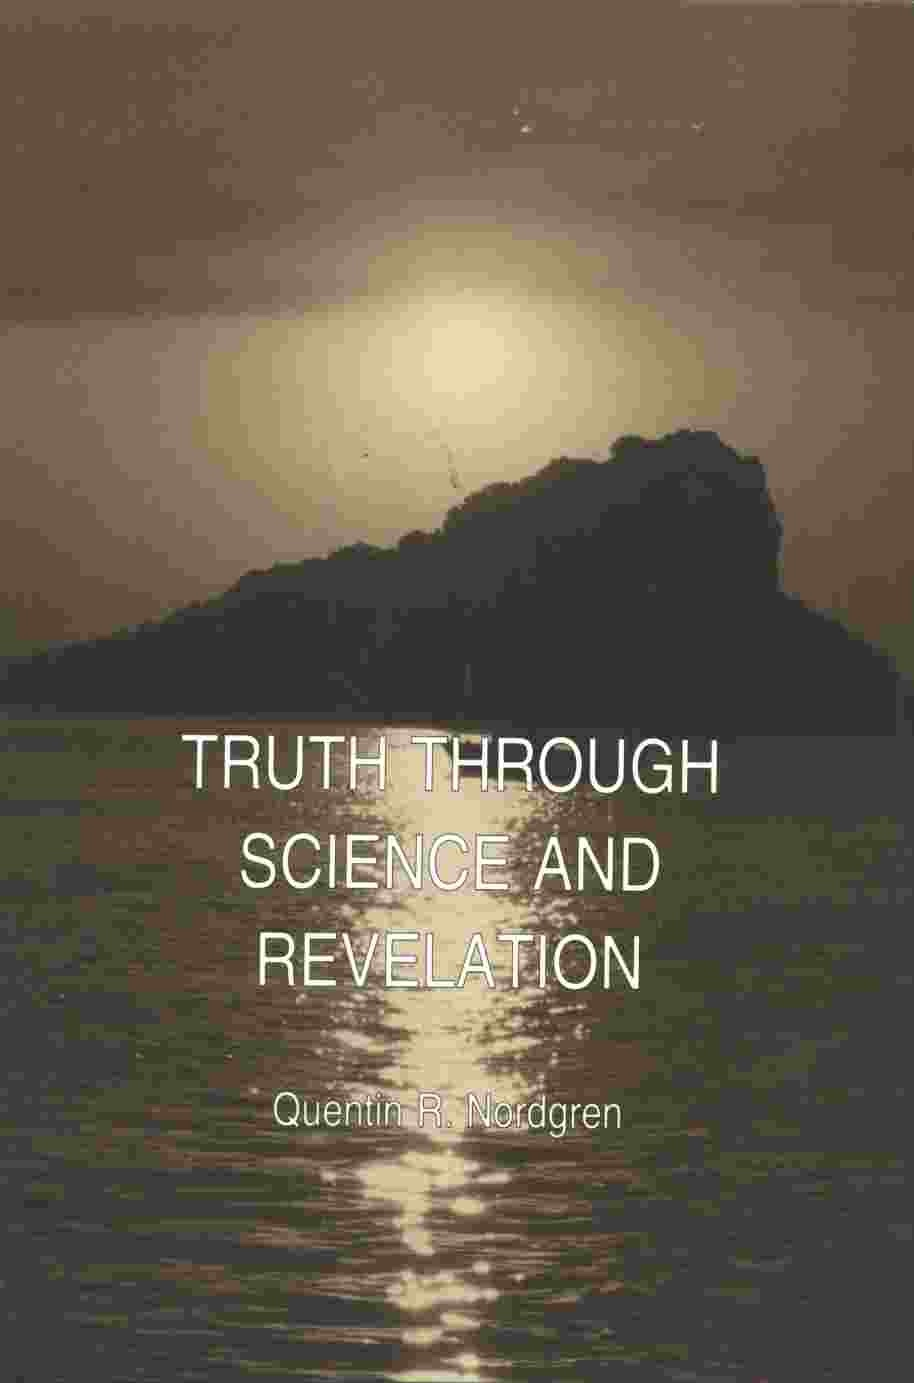 Image for TRUTH THROUGH SCIENCE AND REVELATION